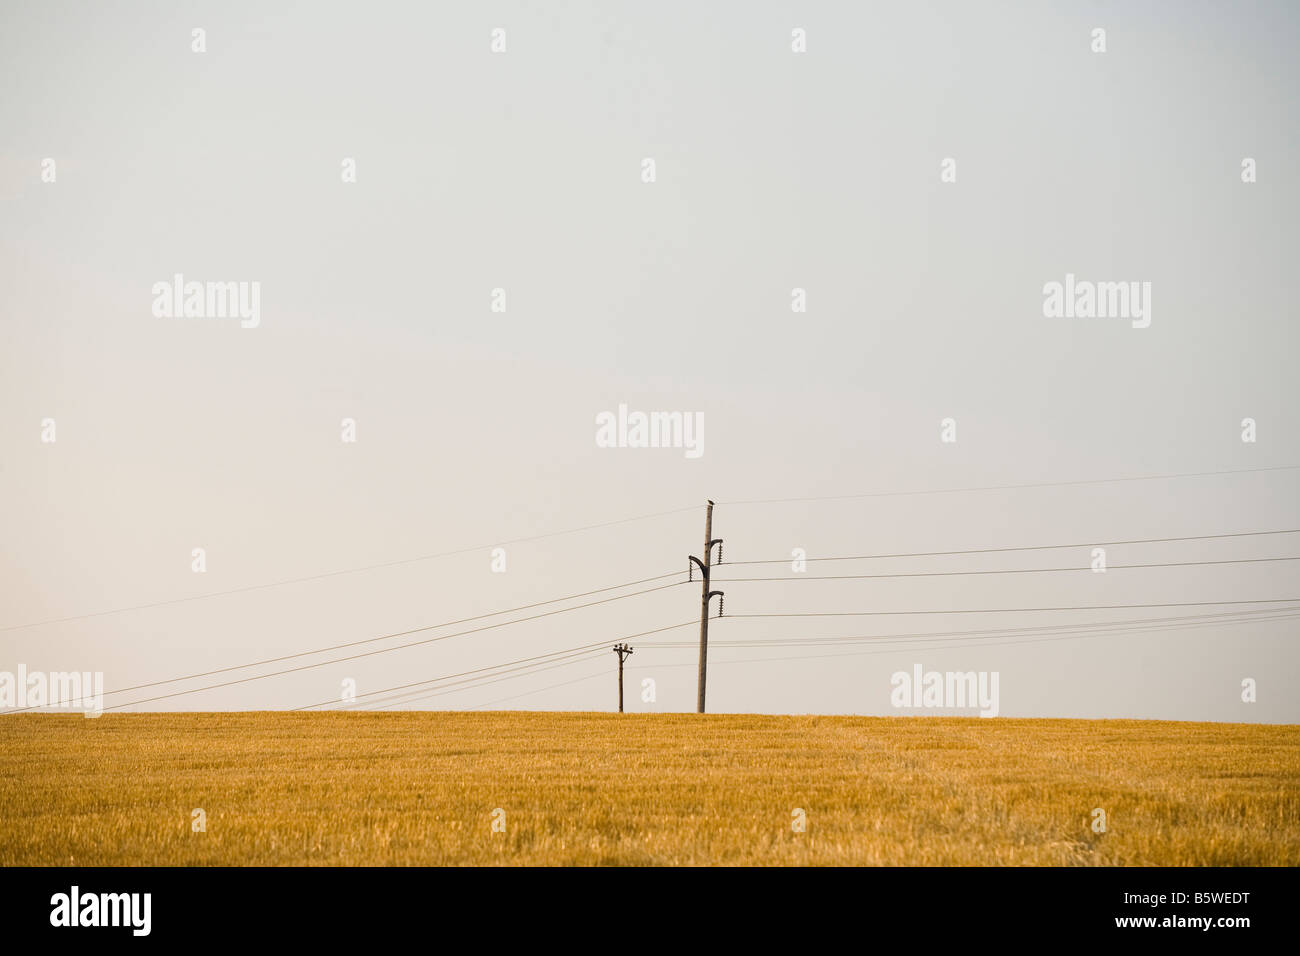 Telephone Poles Stock Photos Telephone Poles Stock Images Page 2